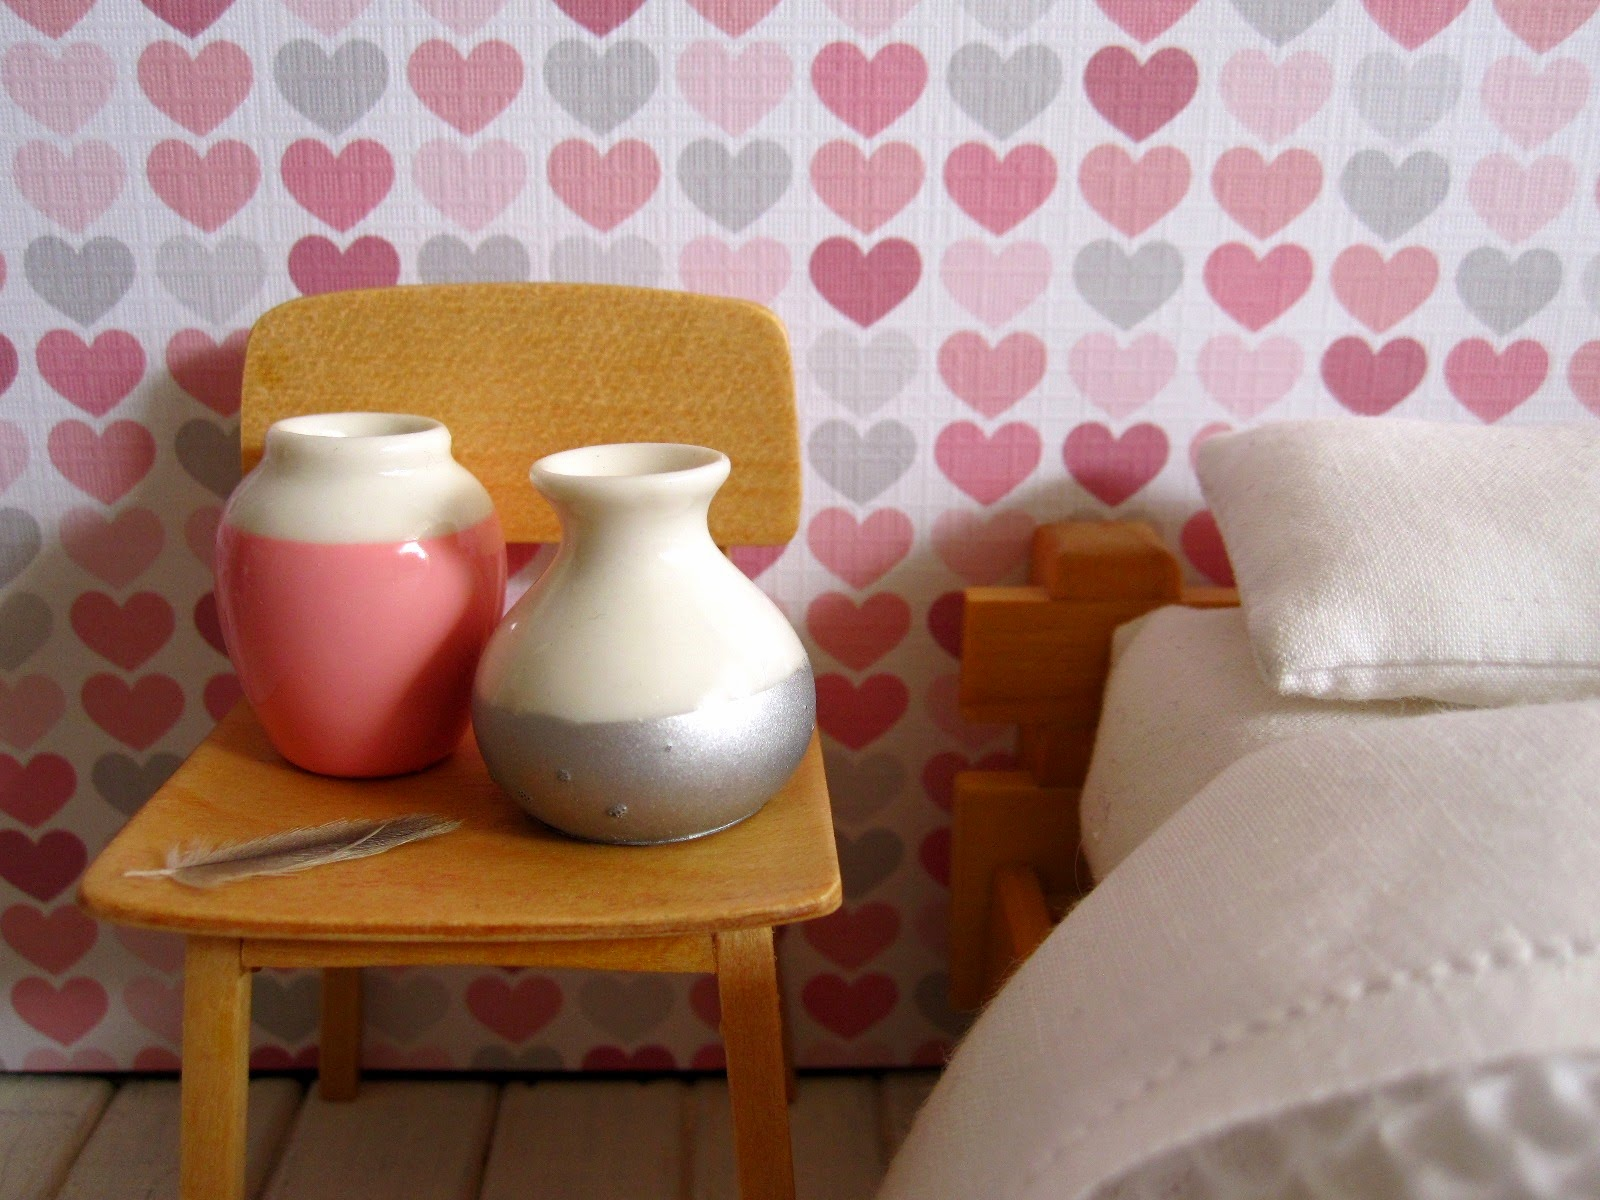 Modern dolls' house miniature bedroom scene with futon bed with a white waffle-weave blanket, a blonde-wood chair holding two dip-painted white vases and a feather.